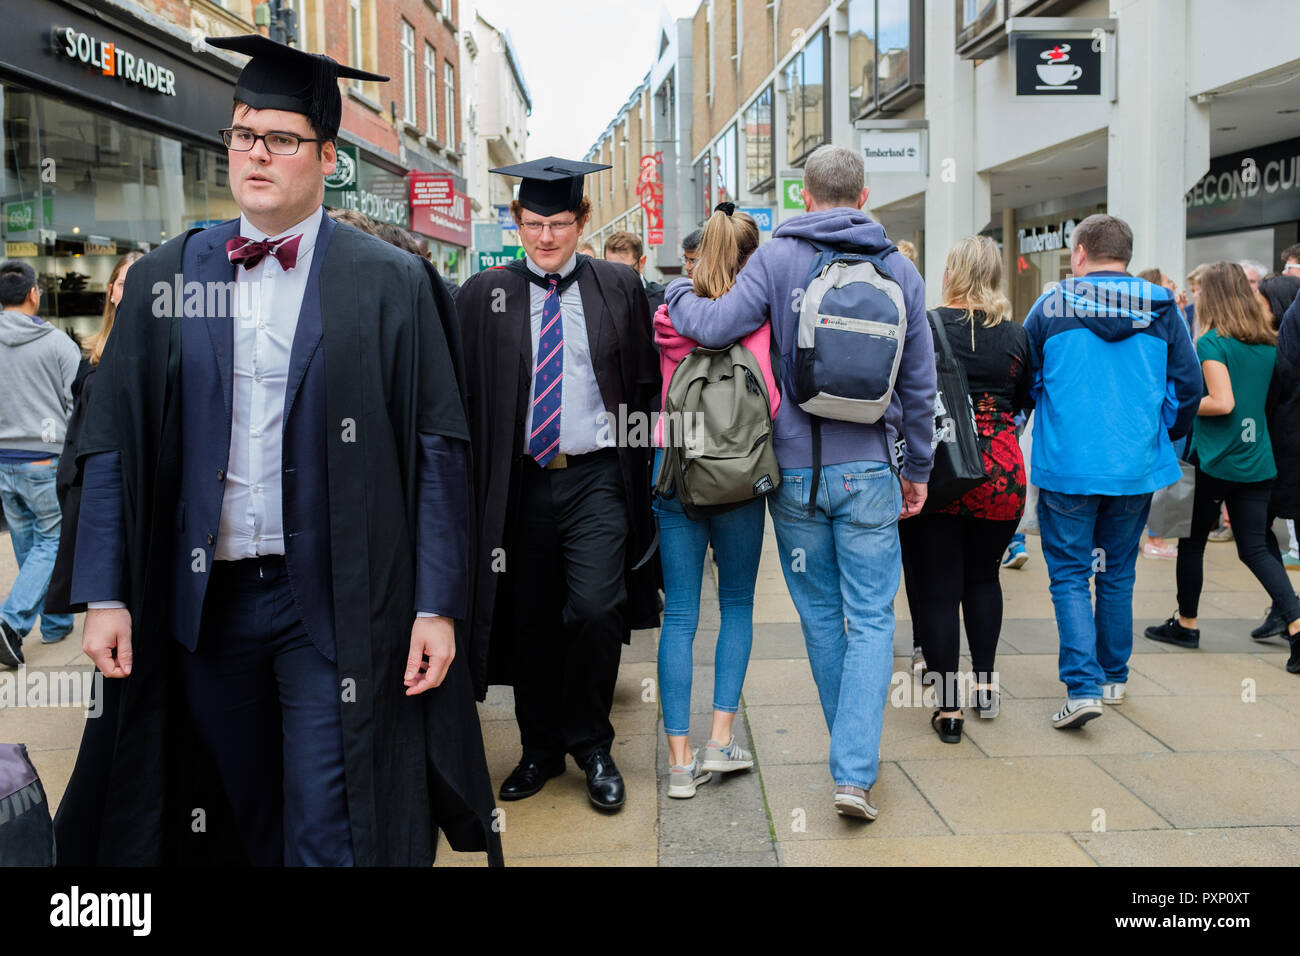 Town and Gown. Michaelmas Term degree procession through Cambridge City centre. - Stock Image